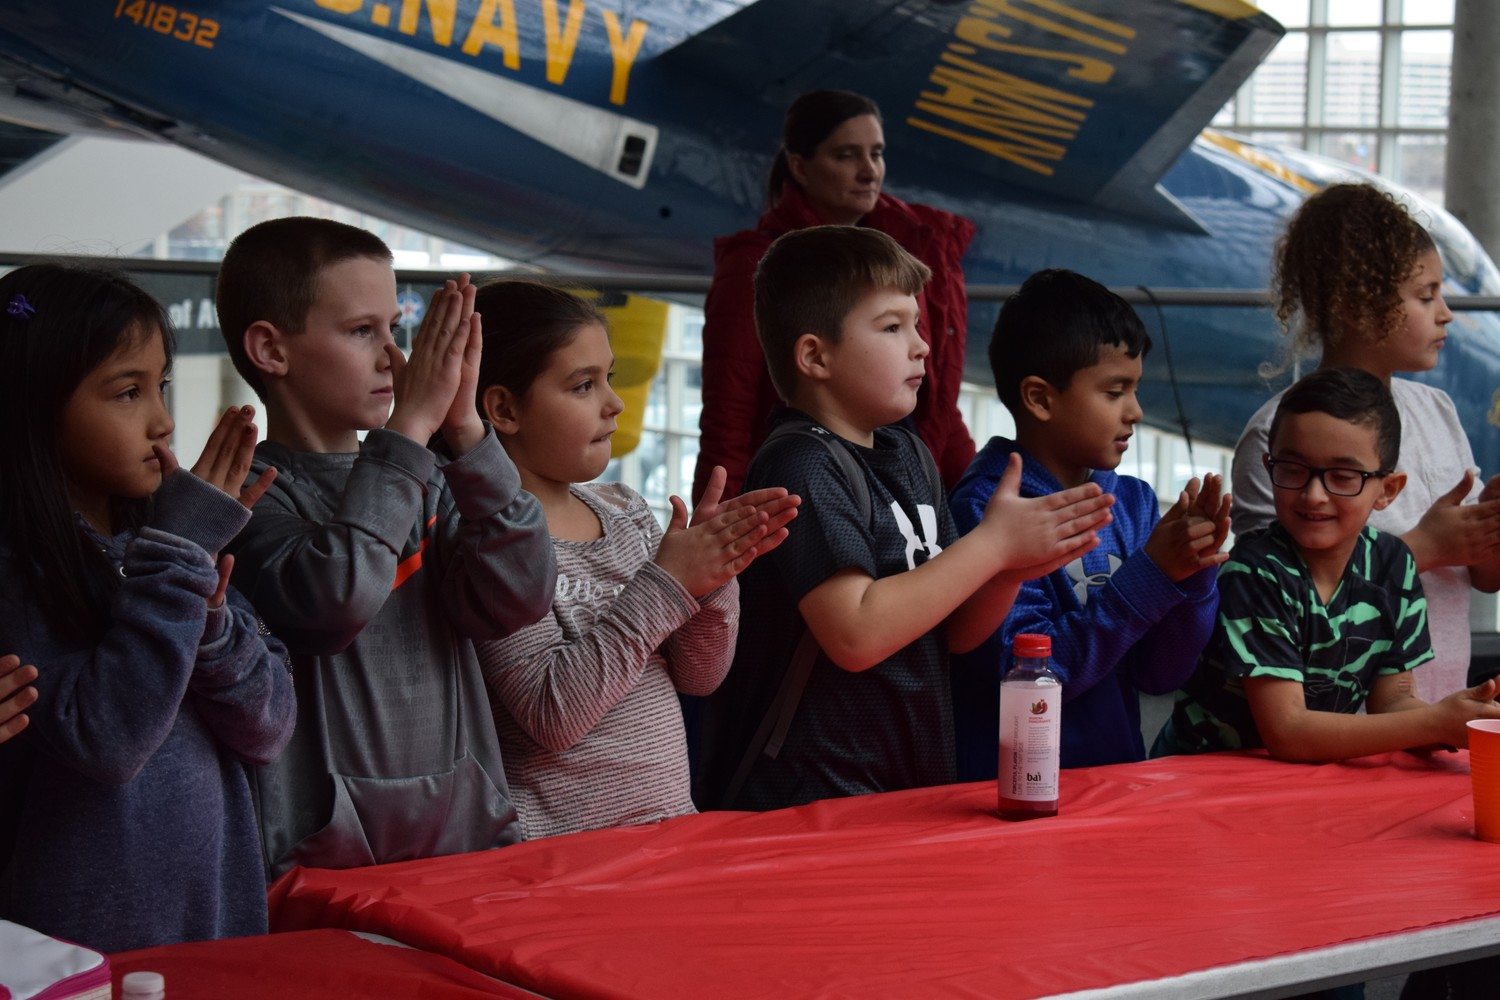 Third-graders from Polk Street Elementary School in Franklin Square rubbed their hands together to simulate the friction that occurs when Mars rovers land on the red planet.